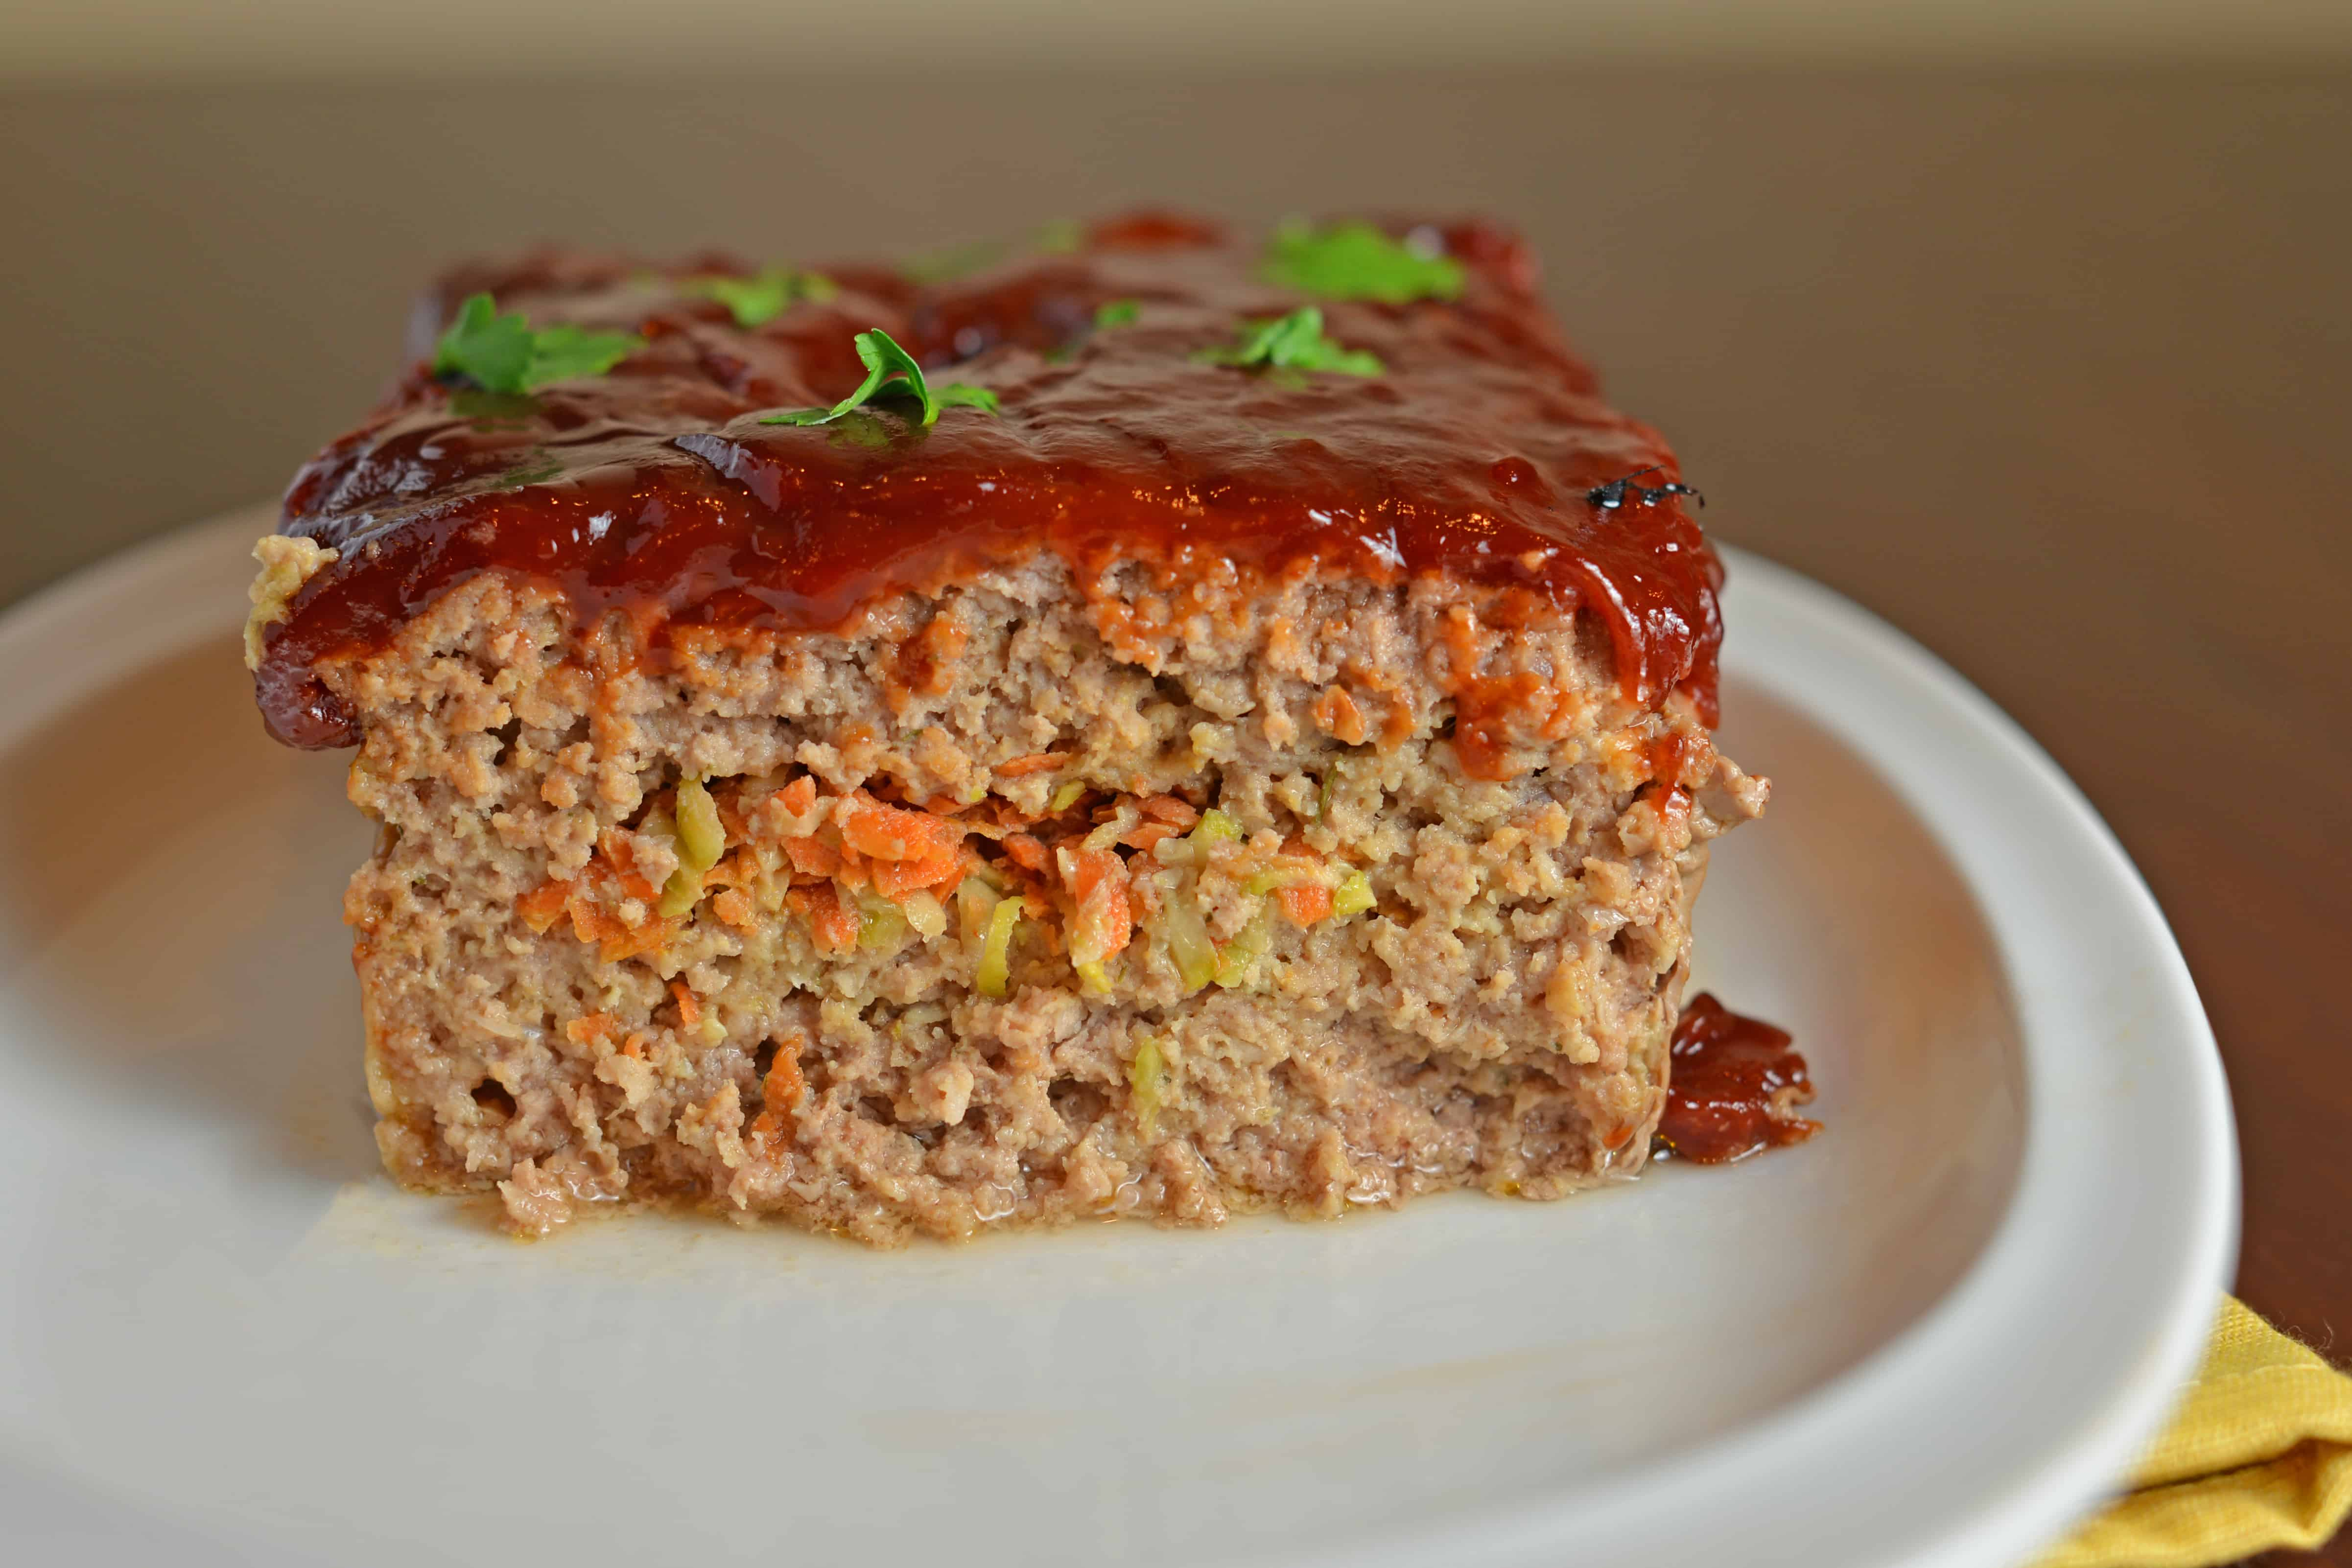 Veggie Stuffed Meatloaf Recipe- The most tender meatloaf ever! Stuffed with carrot and zucchini and topped with a zesty ketchup blend with a special ingredient. Come see what makes this meatloaf one even meatloaf-haters will LOVE! www.savoryexperiments.com